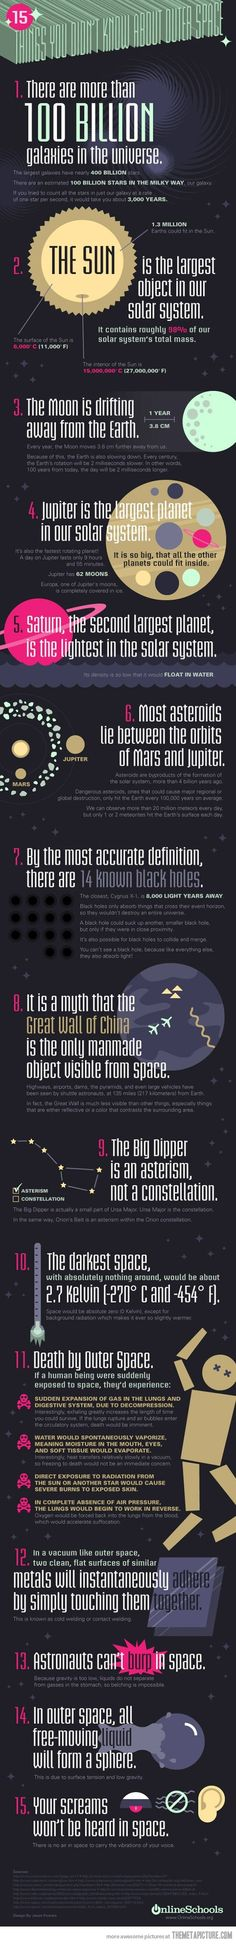 SPACE FACTS!!!!